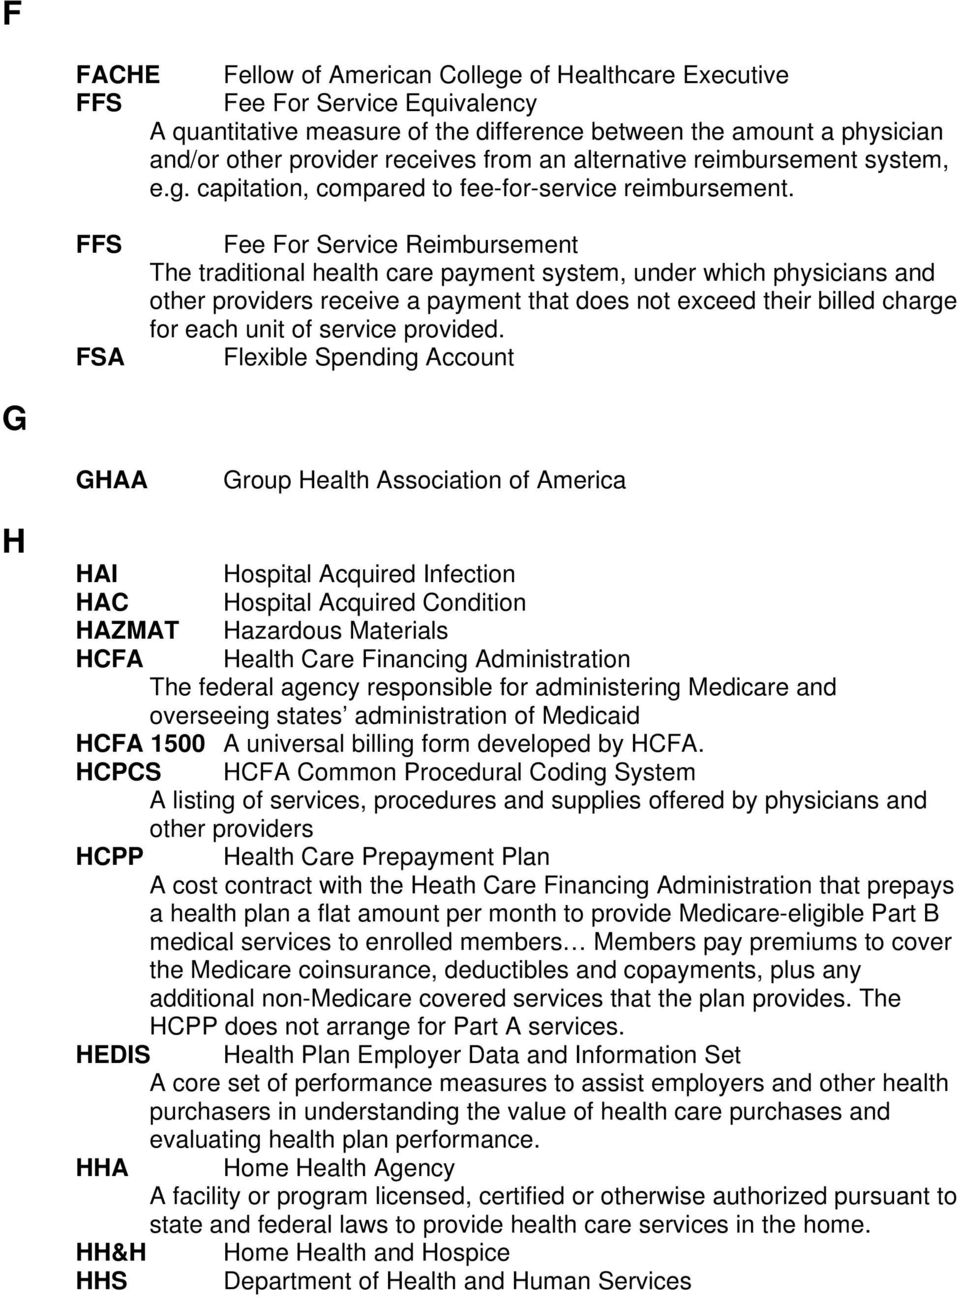 FFS FSA Fee For Service Reimbursement The traditional health care payment system, under which physicians and other providers receive a payment that does not exceed their billed charge for each unit